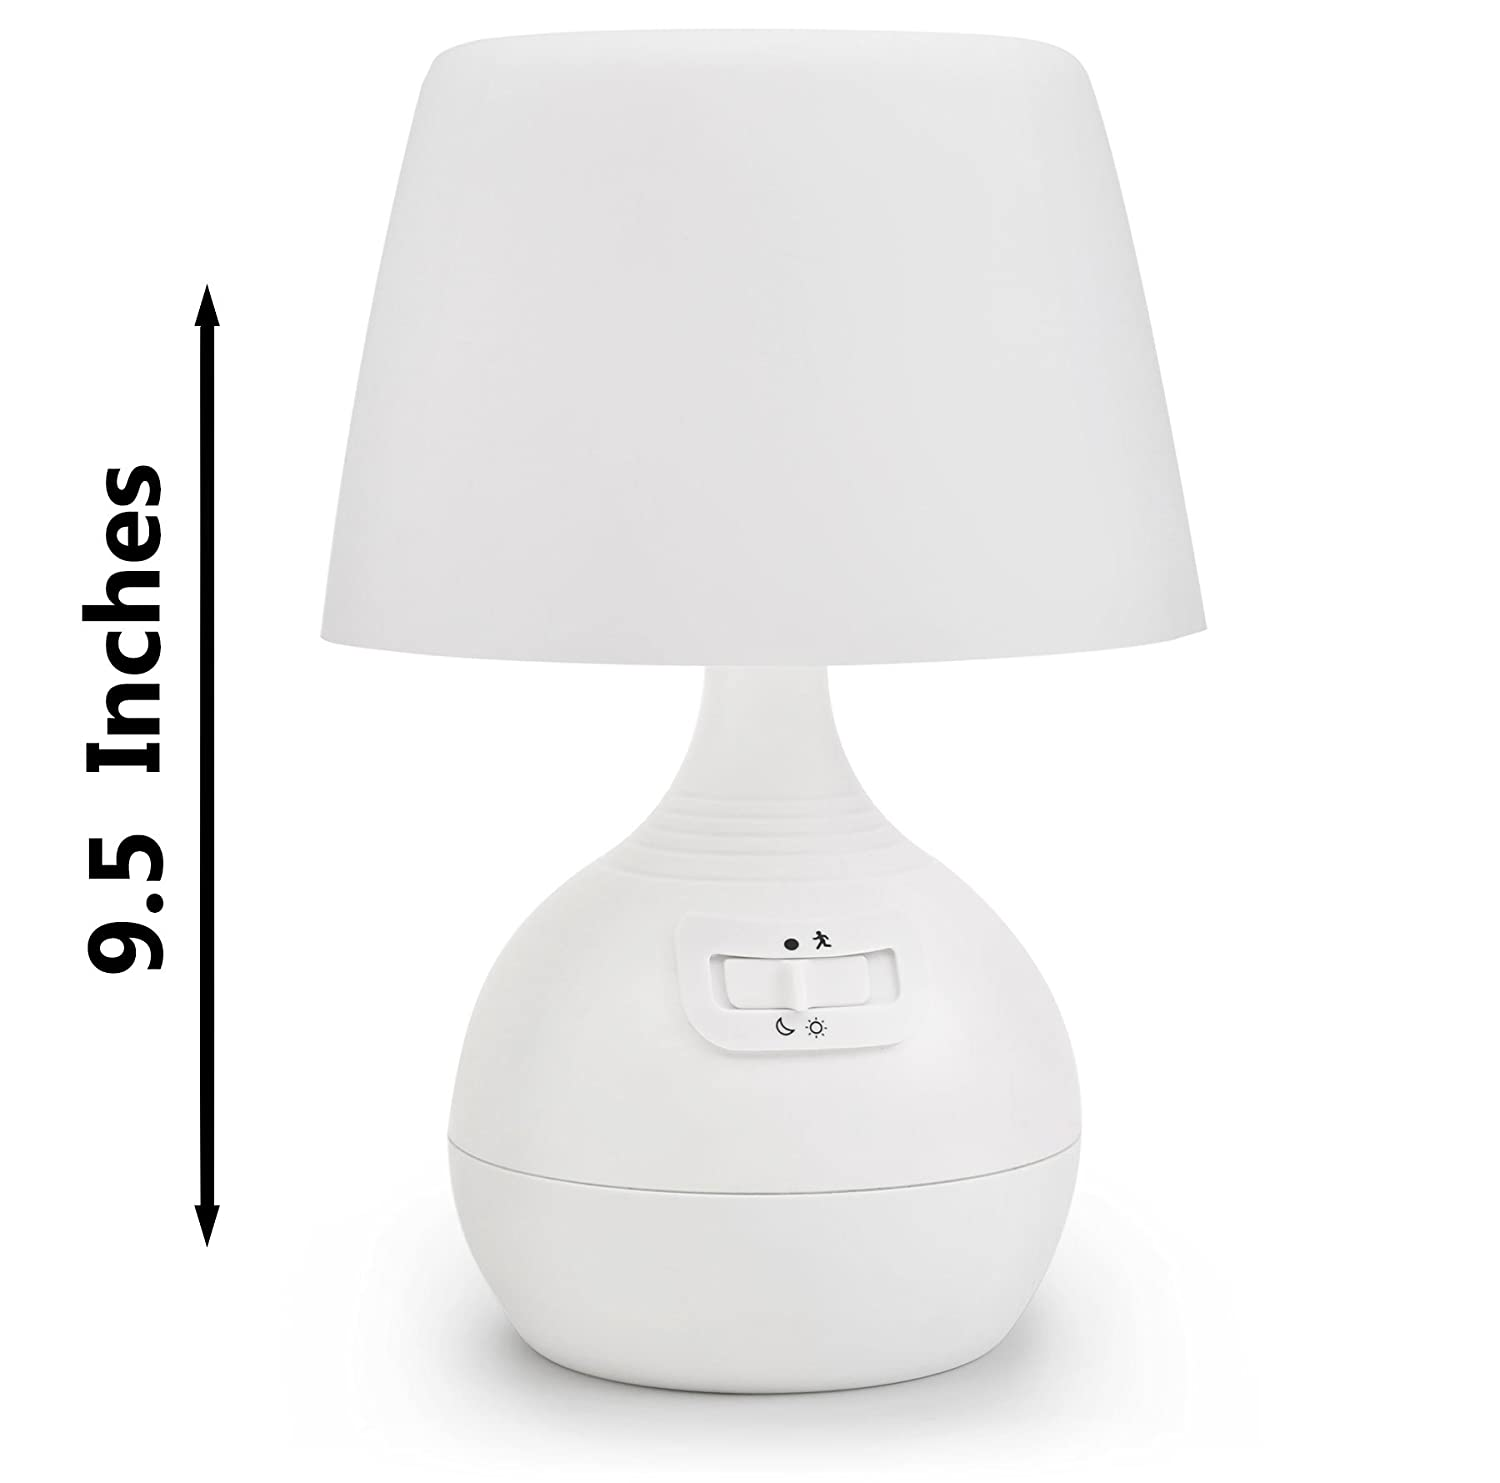 Ivation 12 led battery operated motion sensing table lamp dual ivation 12 led battery operated motion sensing table lamp dual color range available settings include manual automatic motion light sensing geotapseo Choice Image